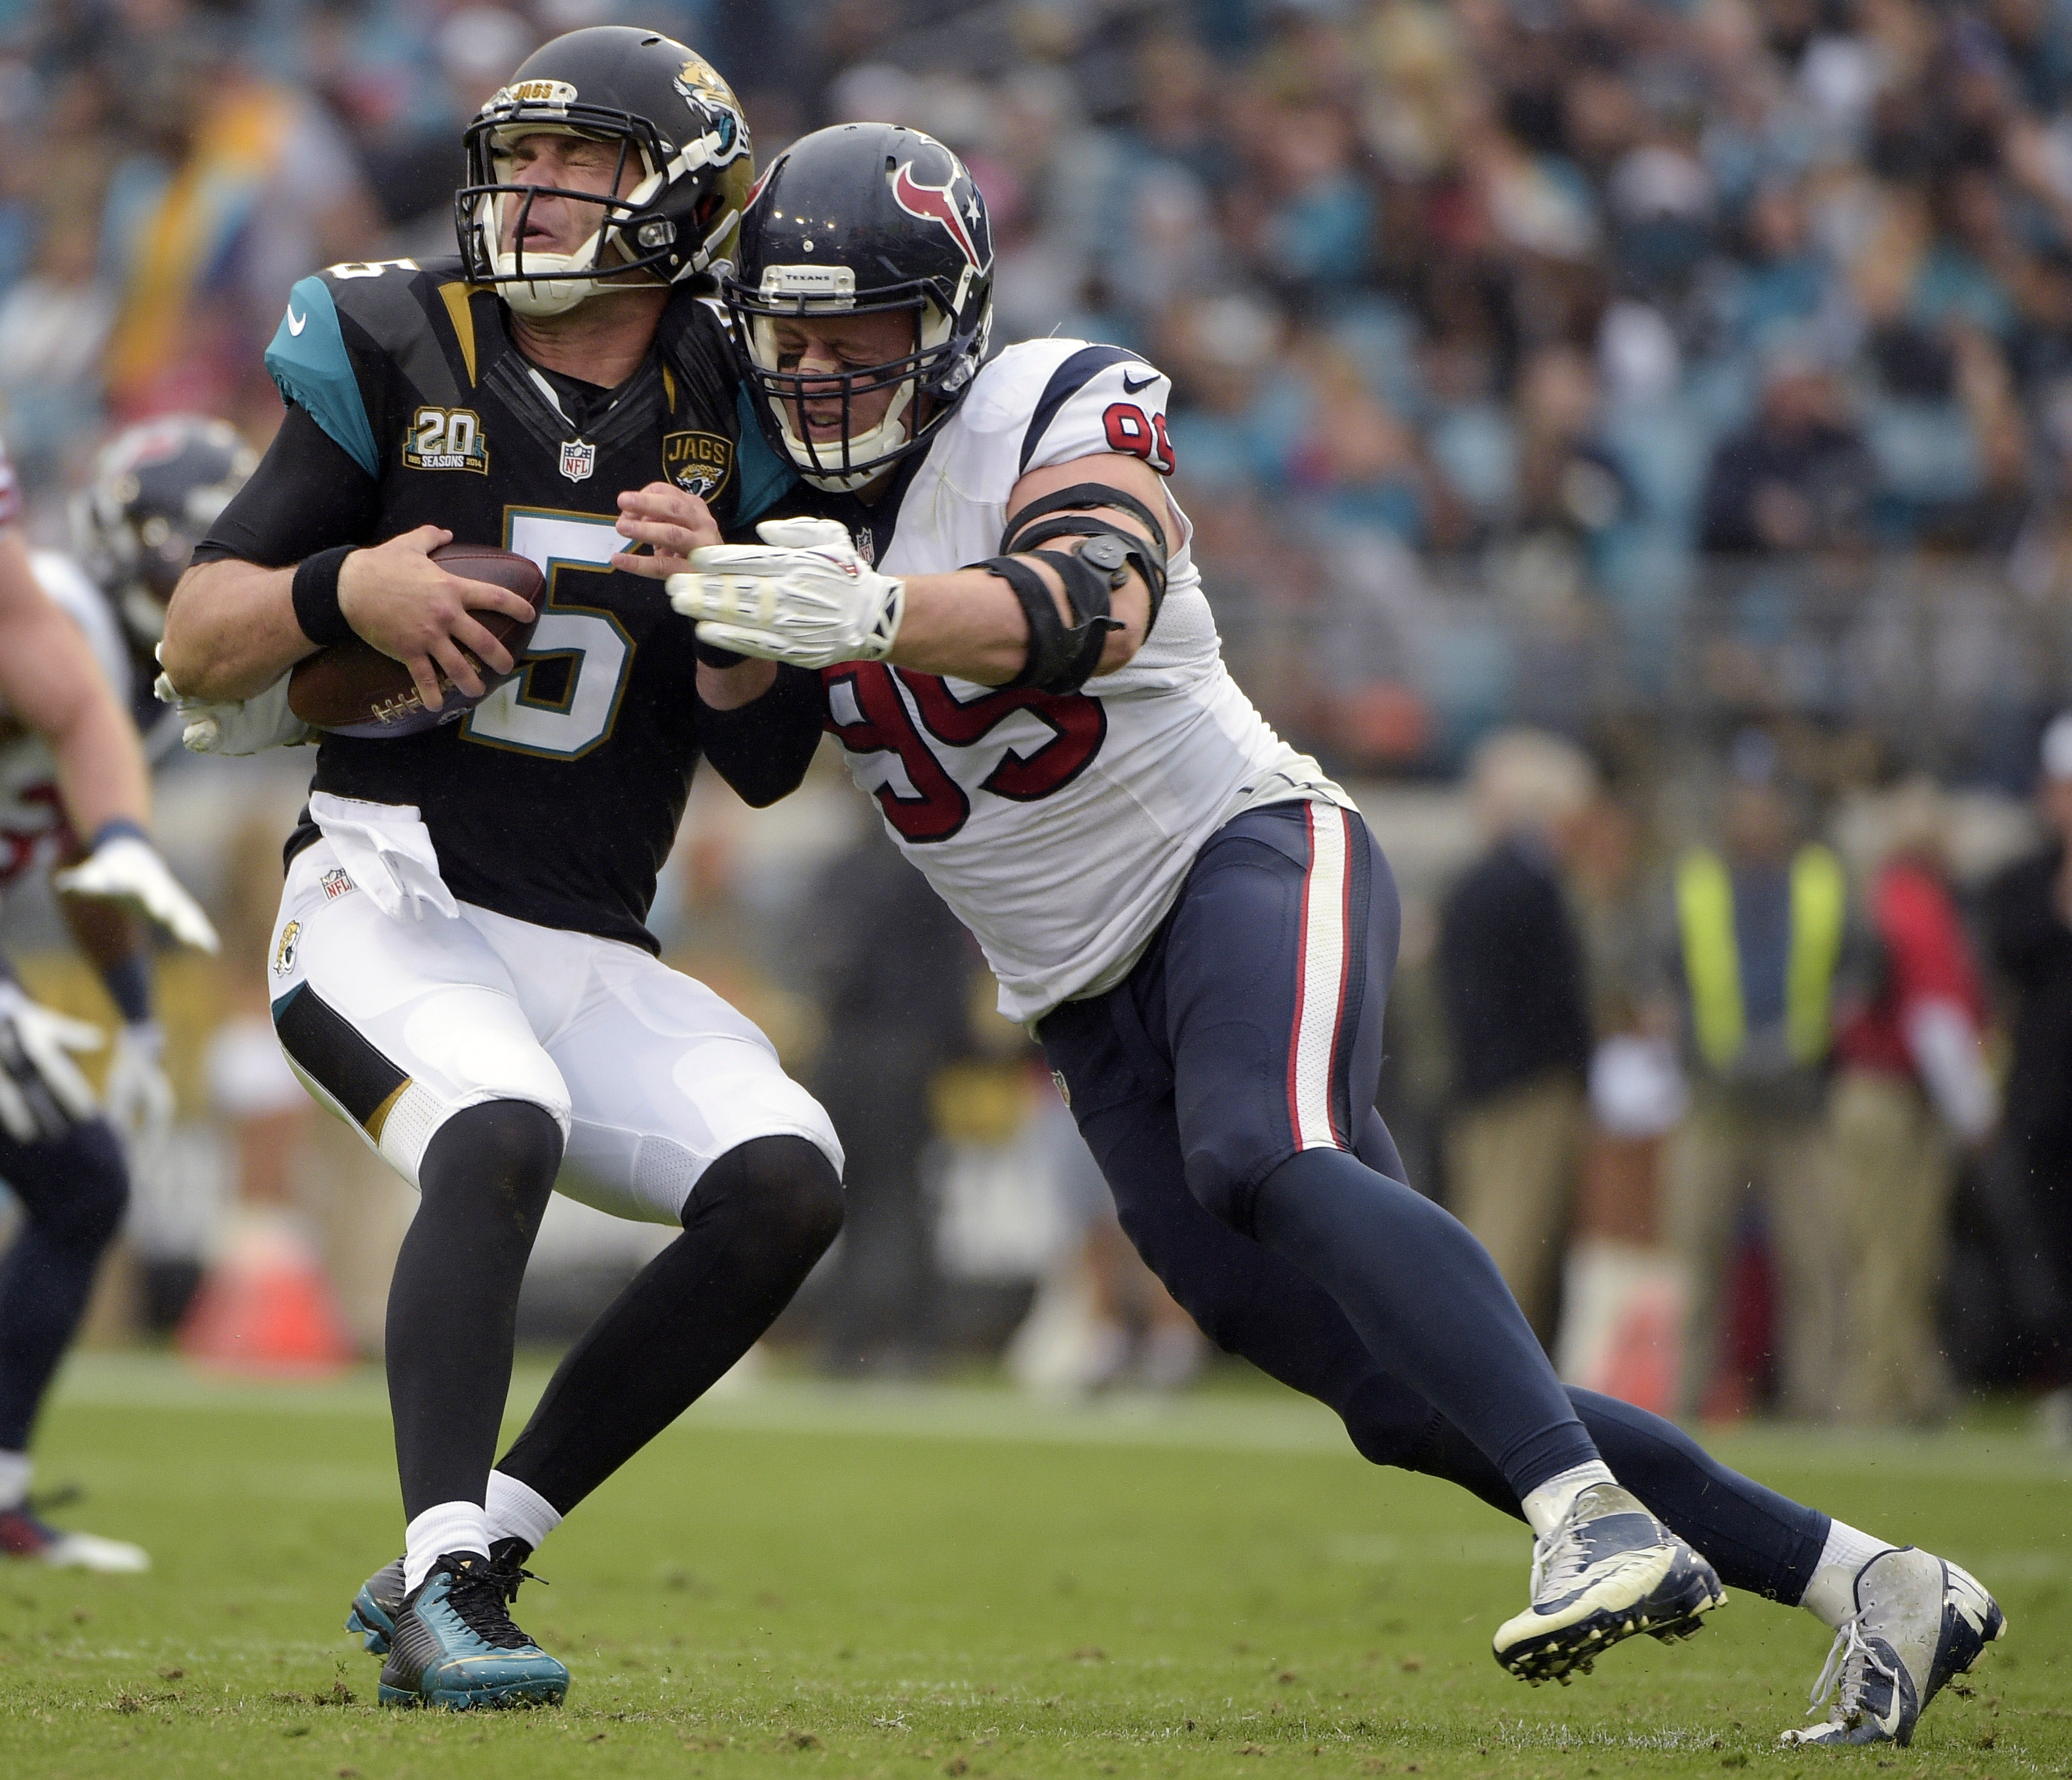 FILE - In this Dec. 7, 2014, file photo, Jacksonville Jaguars quarterback Blake Bortles (5) is sacked by Houston Texans defensive end J.J. Watt (99) during the first half of an NFL football game in Jacksonville, Fla. Watt is coming off a spectacular seaso